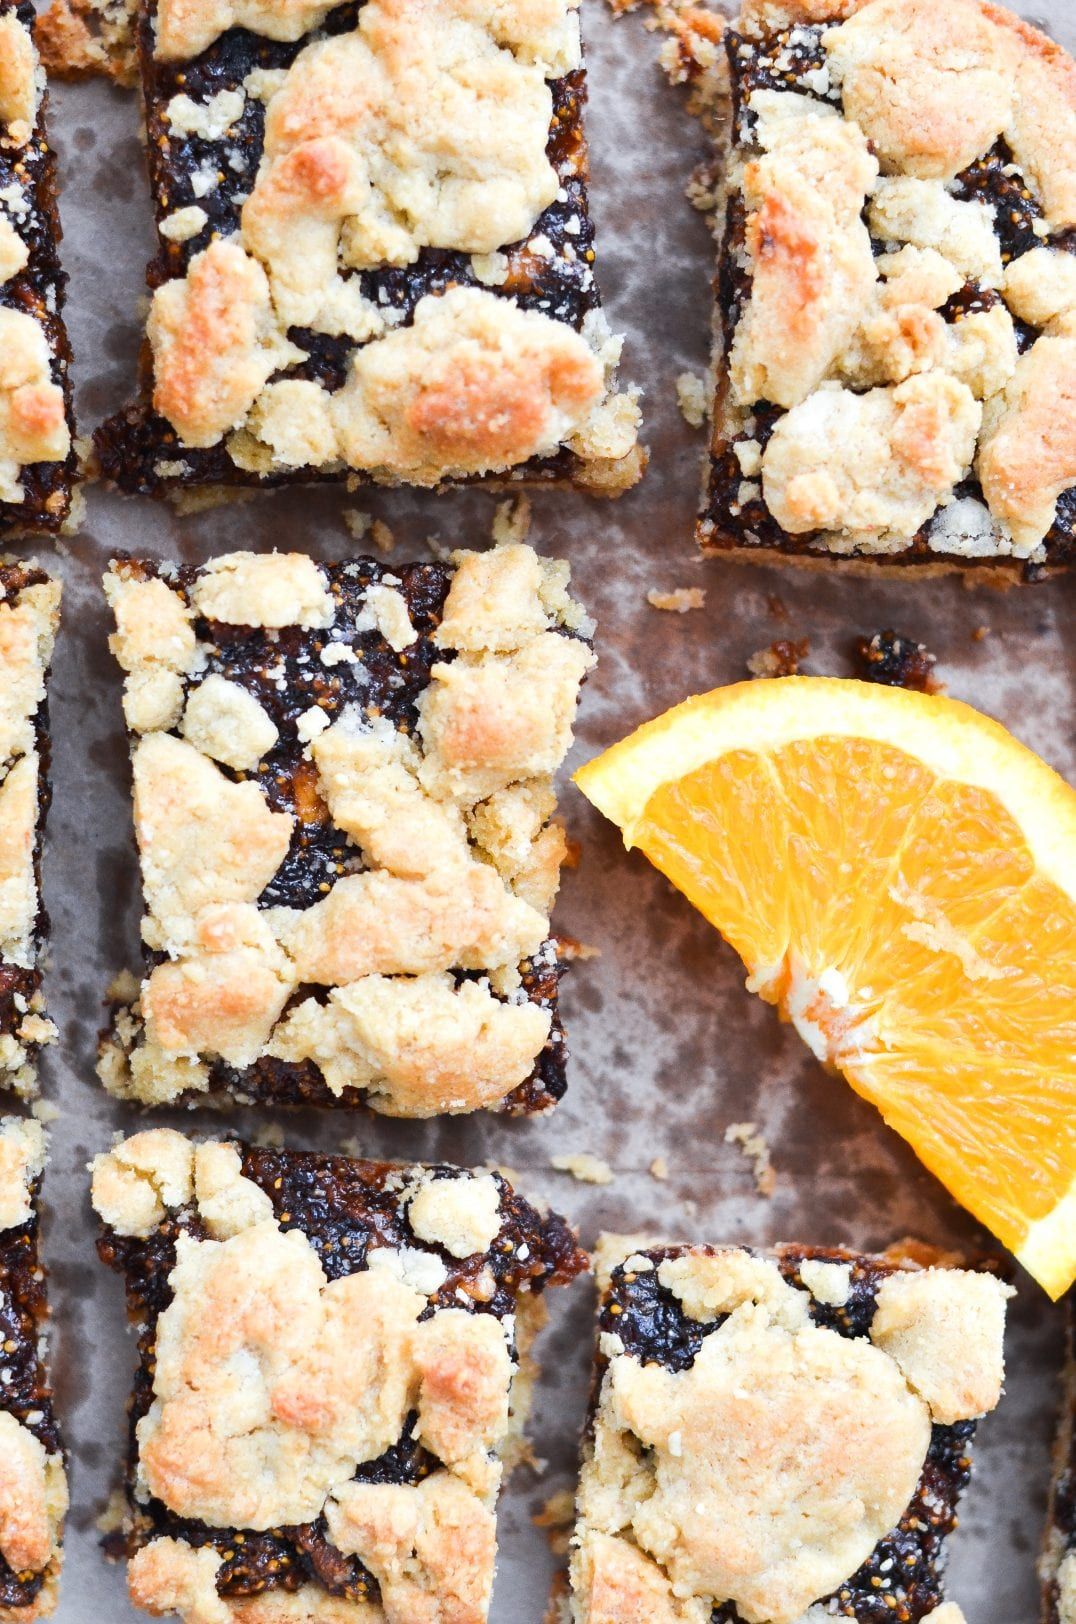 fig bars on tray with orange slice